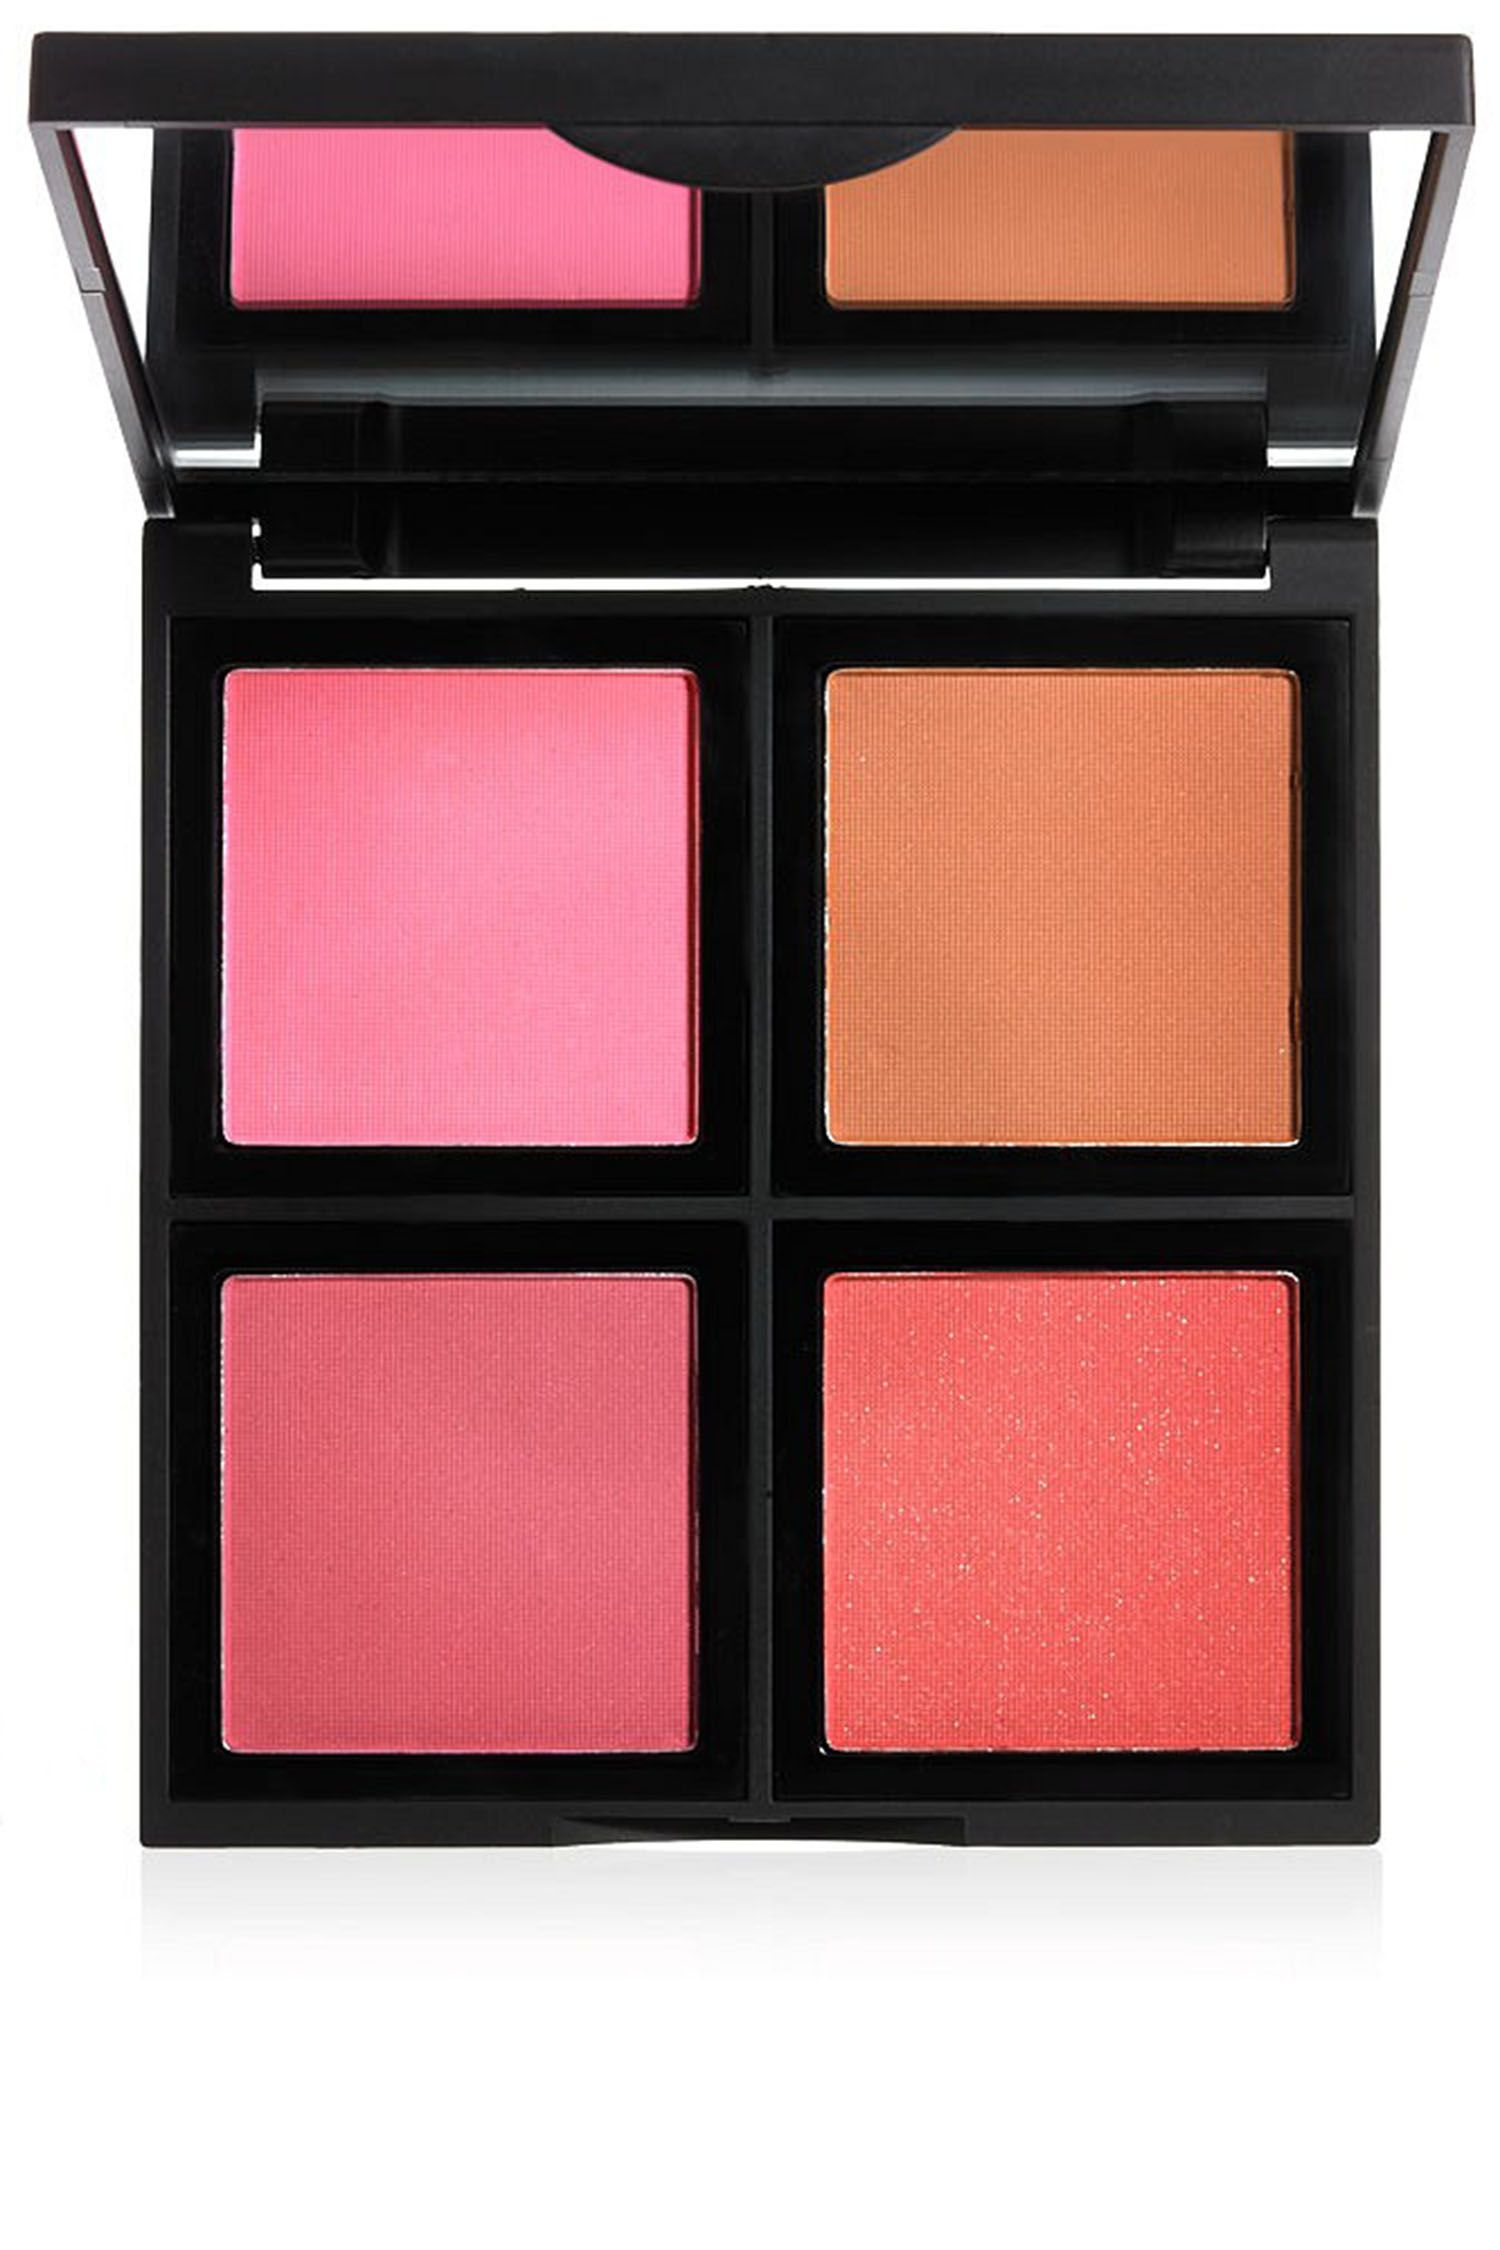 Best Blush Under $15 - 13 New Drugstore Blushes to Try